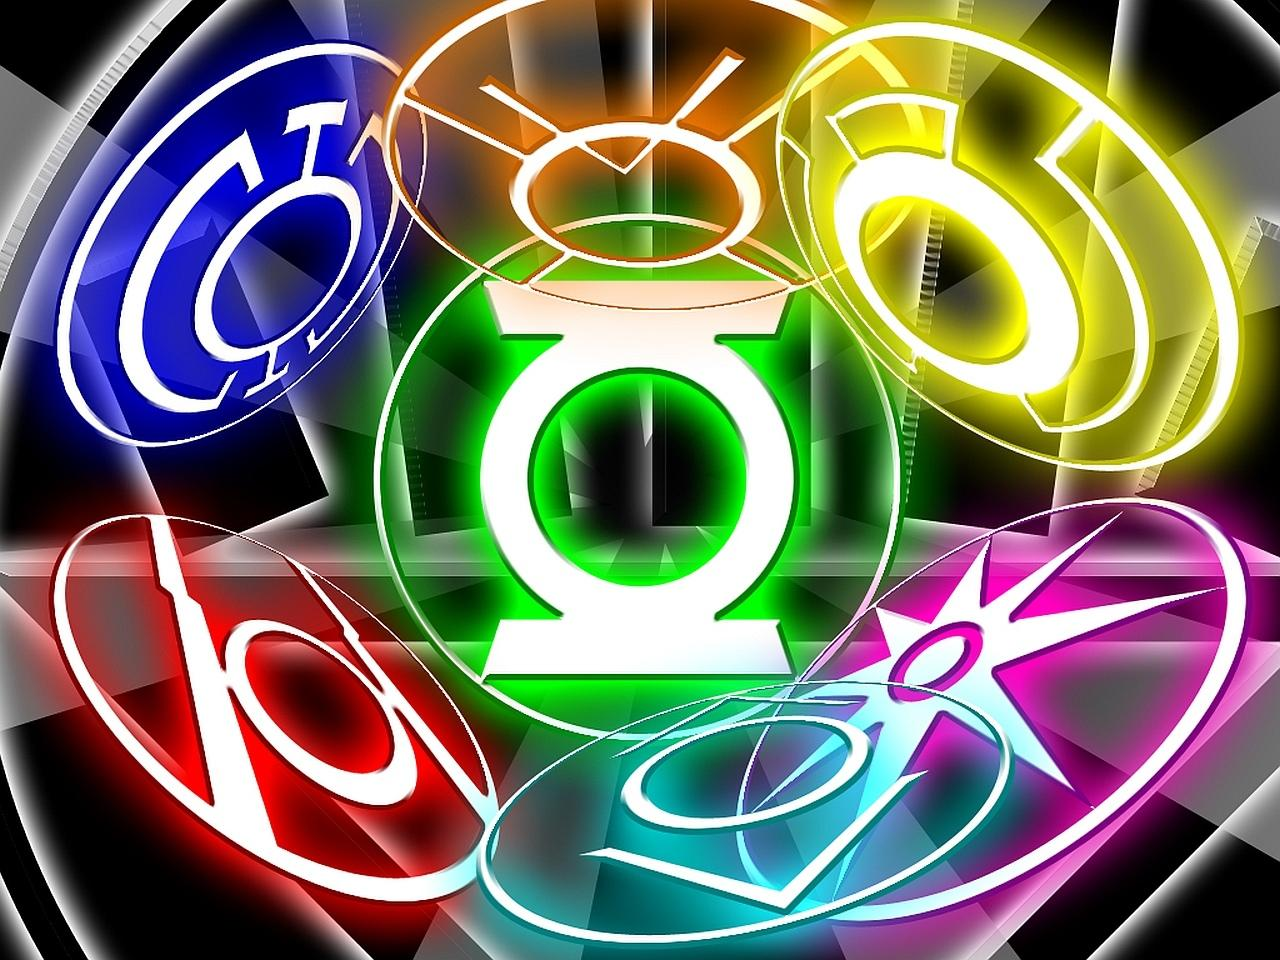 Lantern Corps wallpapers HD quality